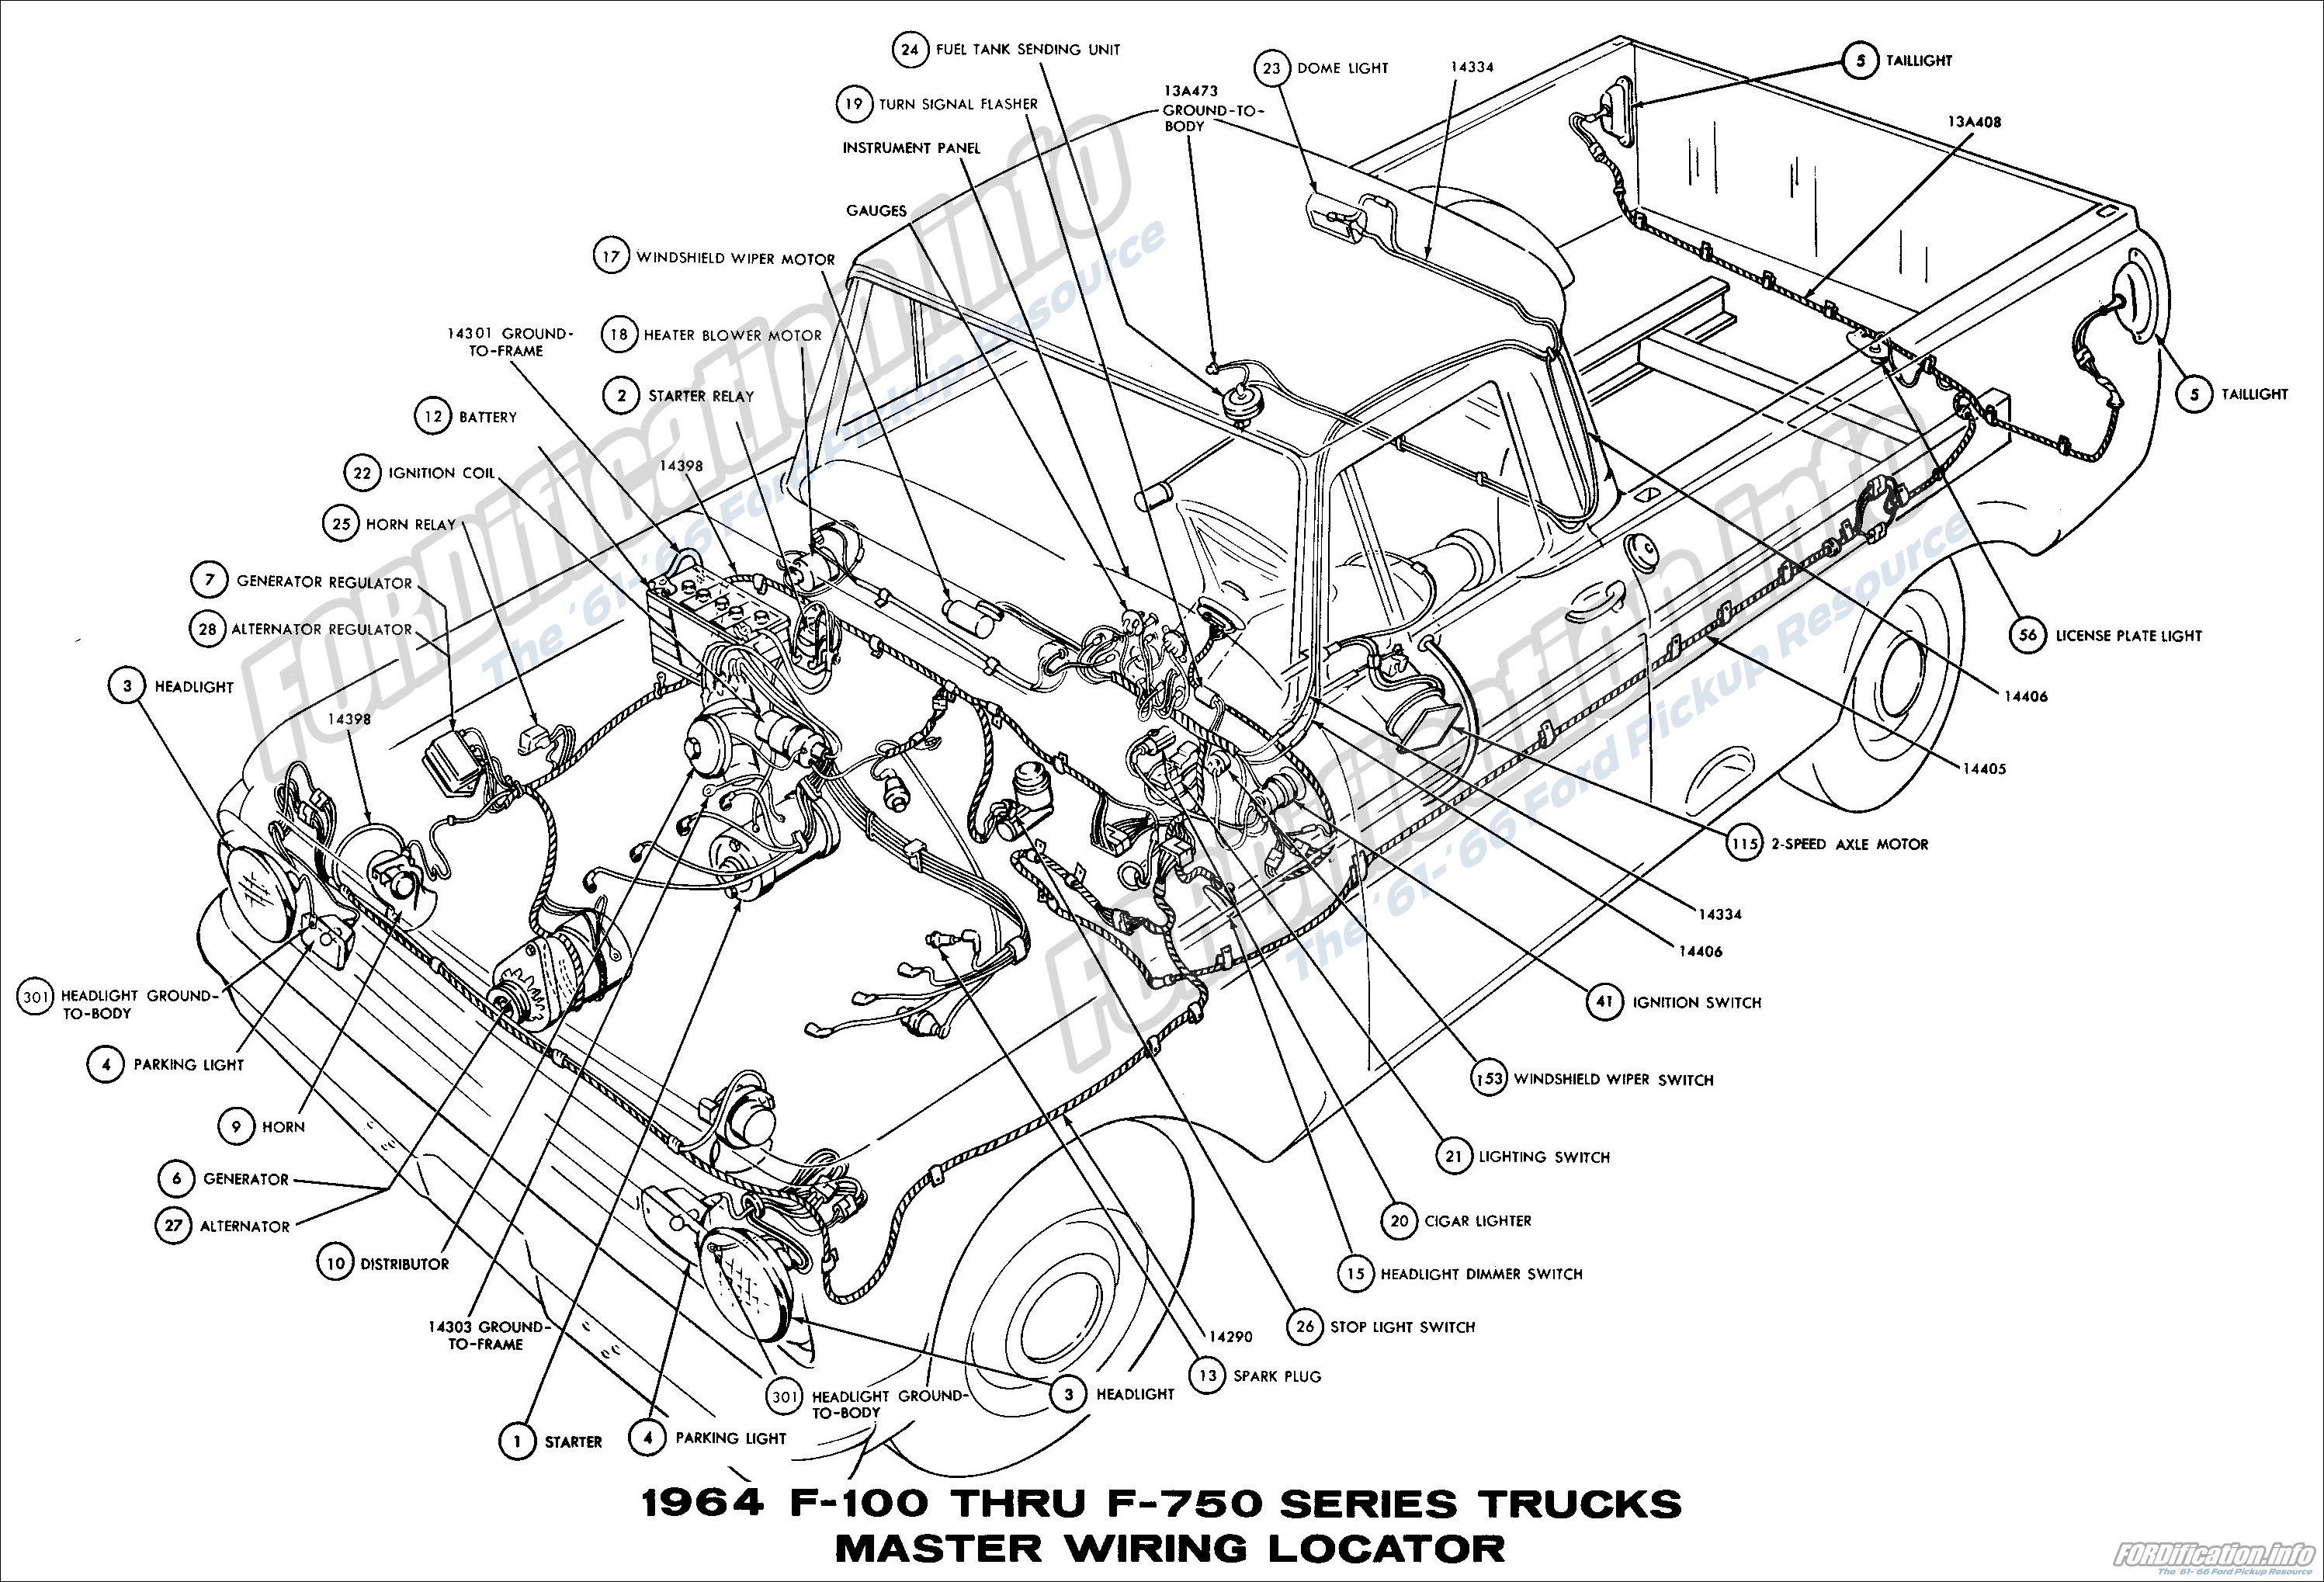 1964_01_gif 1964 ford truck wiring diagrams fordification info the '61 '66 ford truck wiring diagrams at reclaimingppi.co